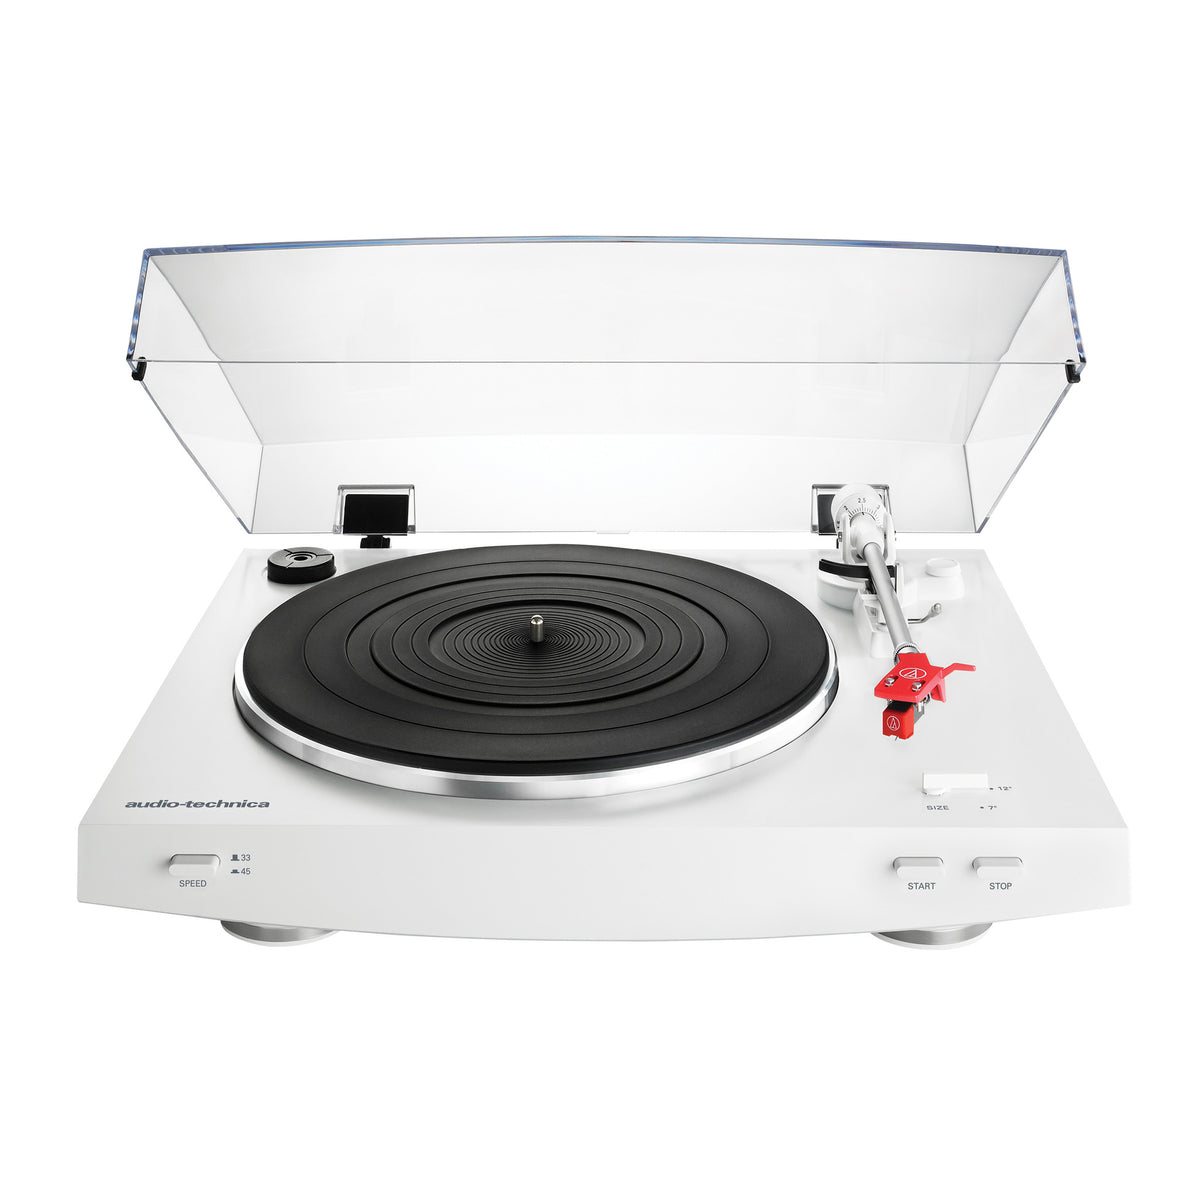 Audio Technica At Lp3wh Automatic Turntable White